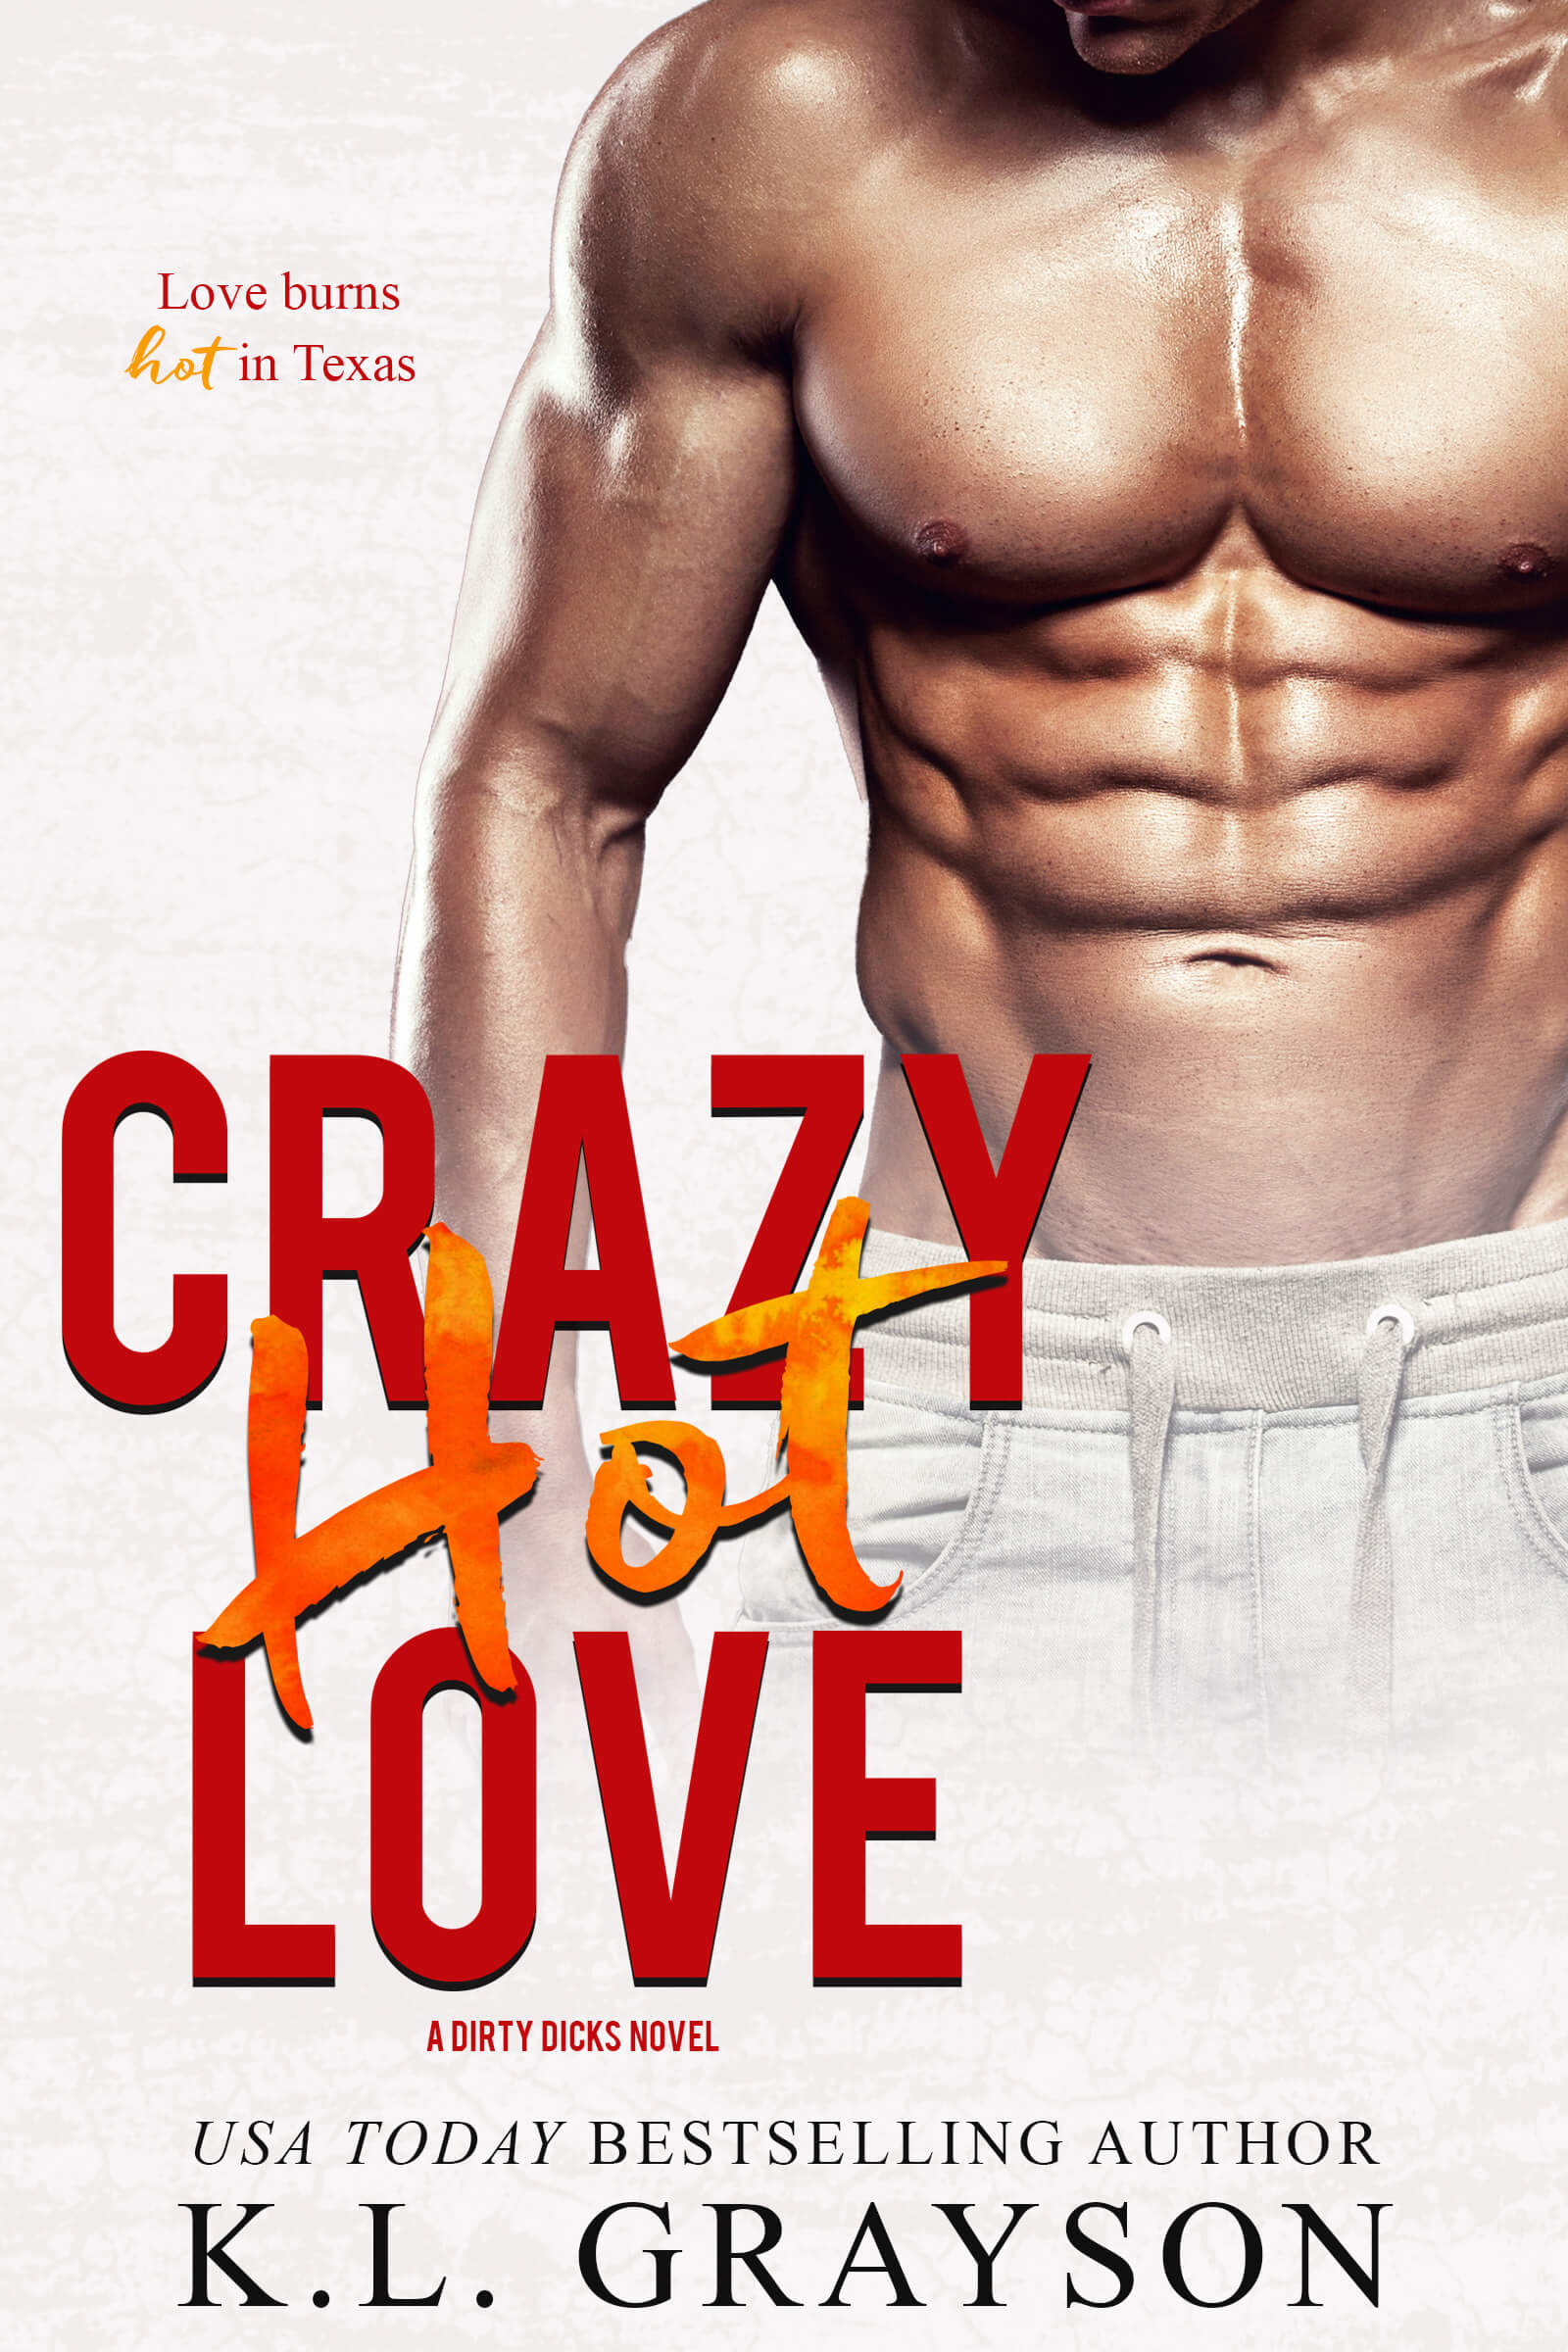 Crazy Hot Love by KL Grayson